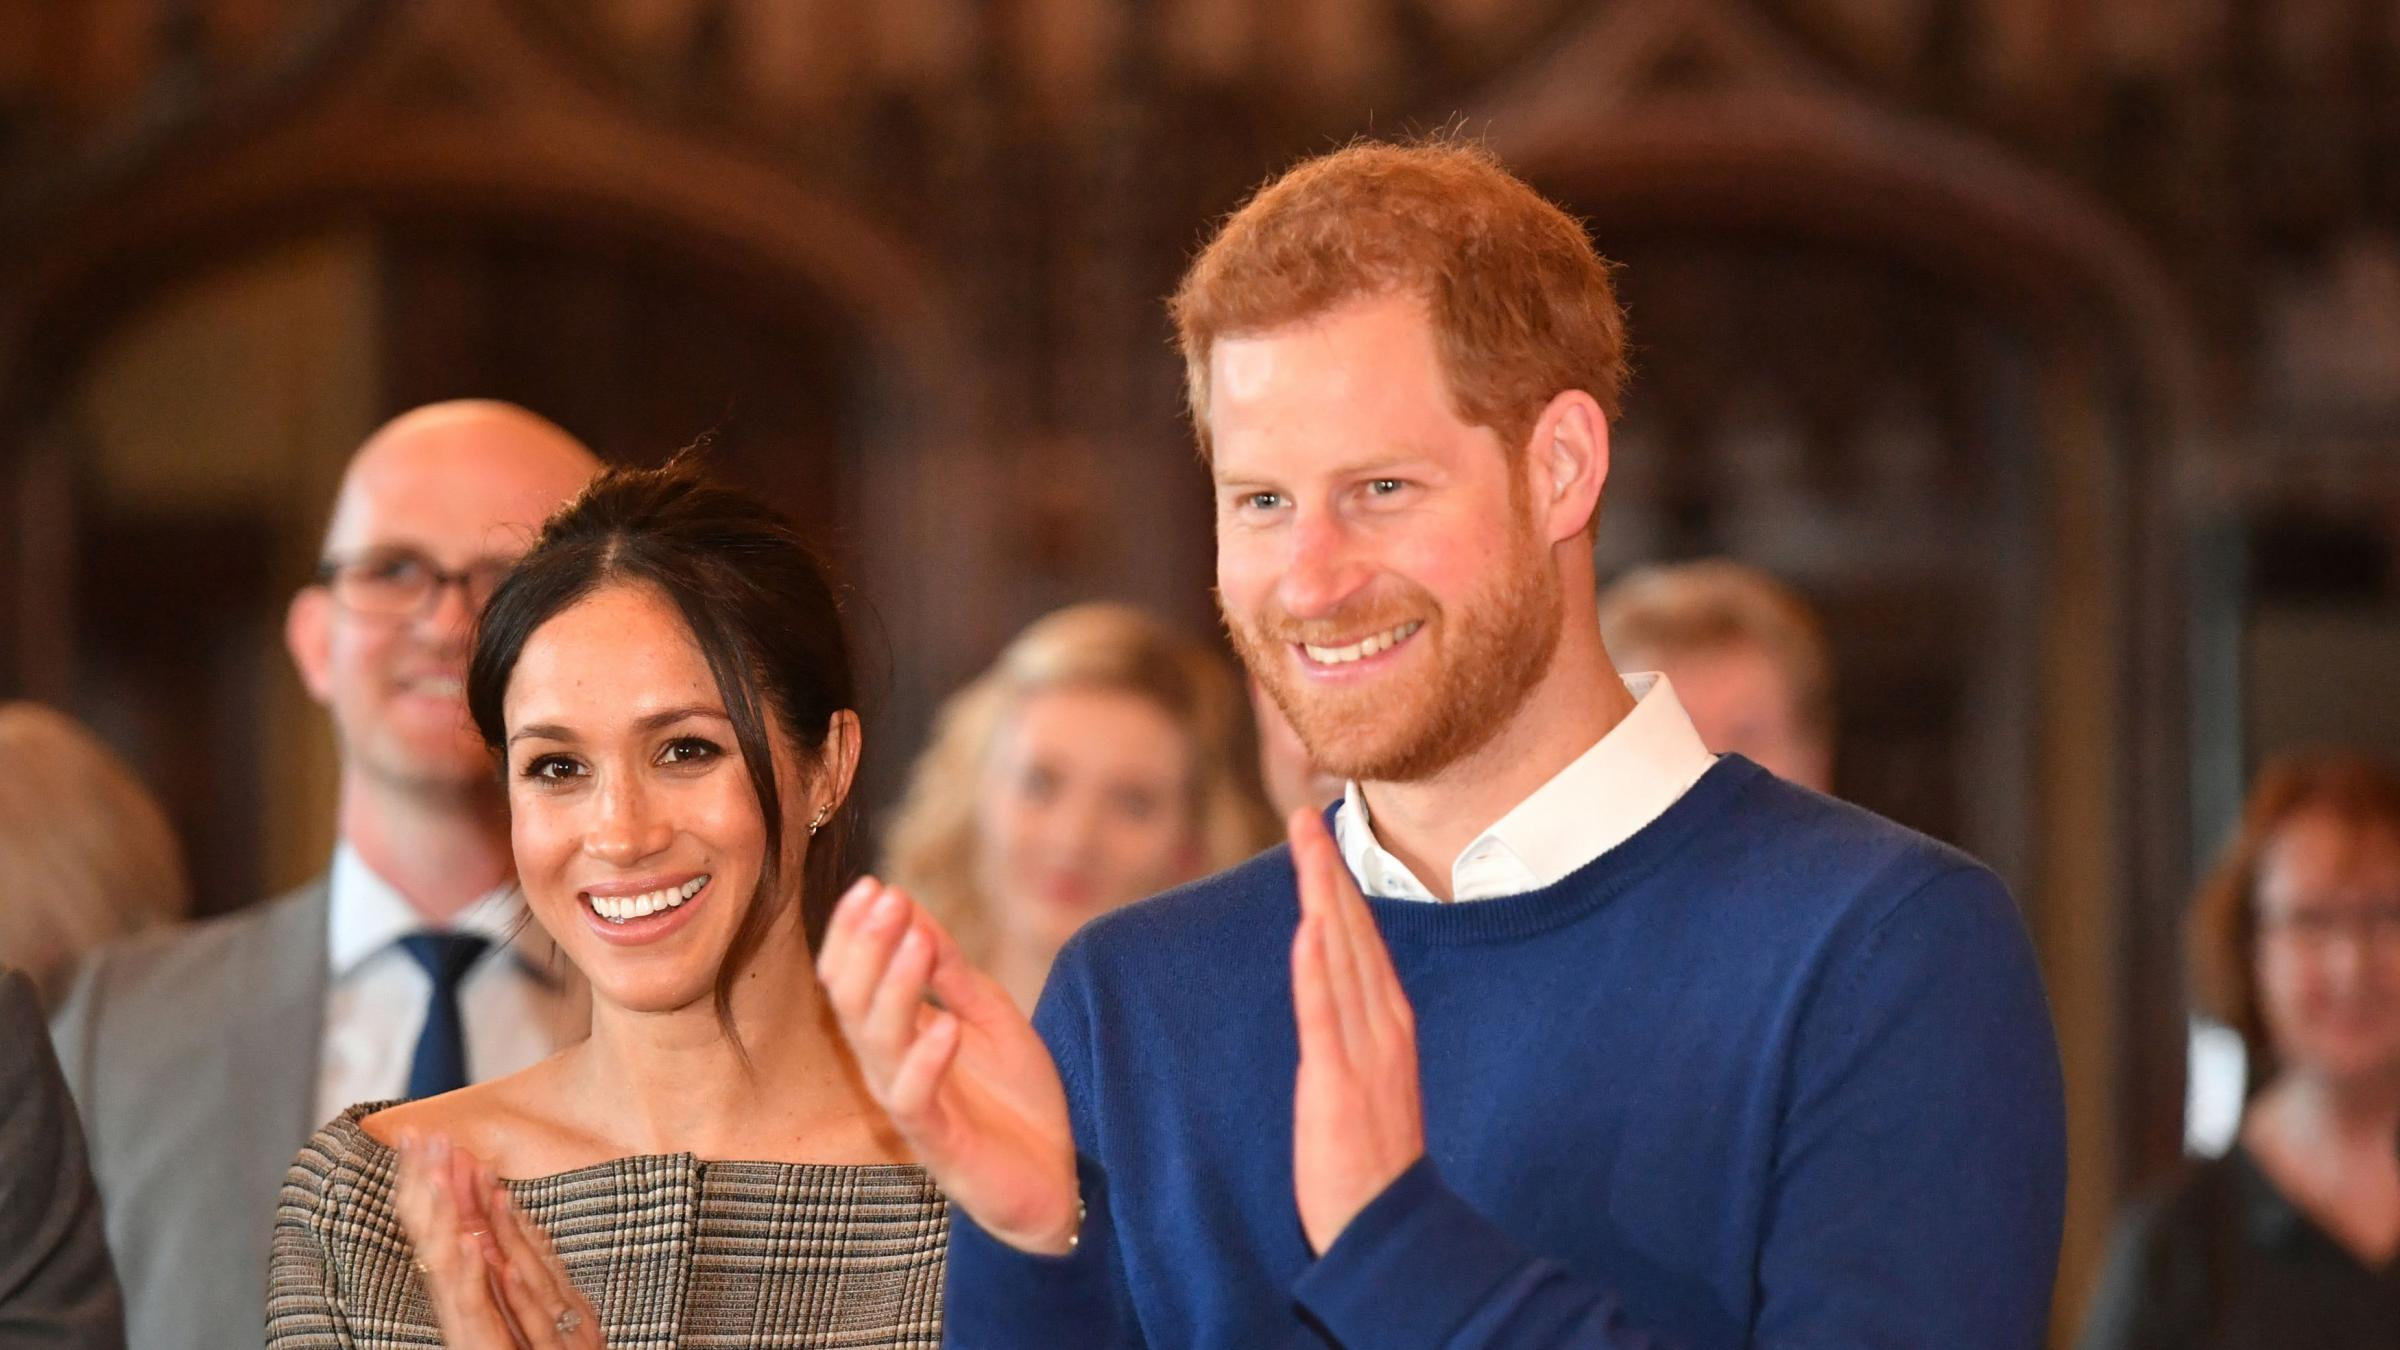 Royal Wedding Time.What Time Does The Royal Wedding Start And End And Will Meghan